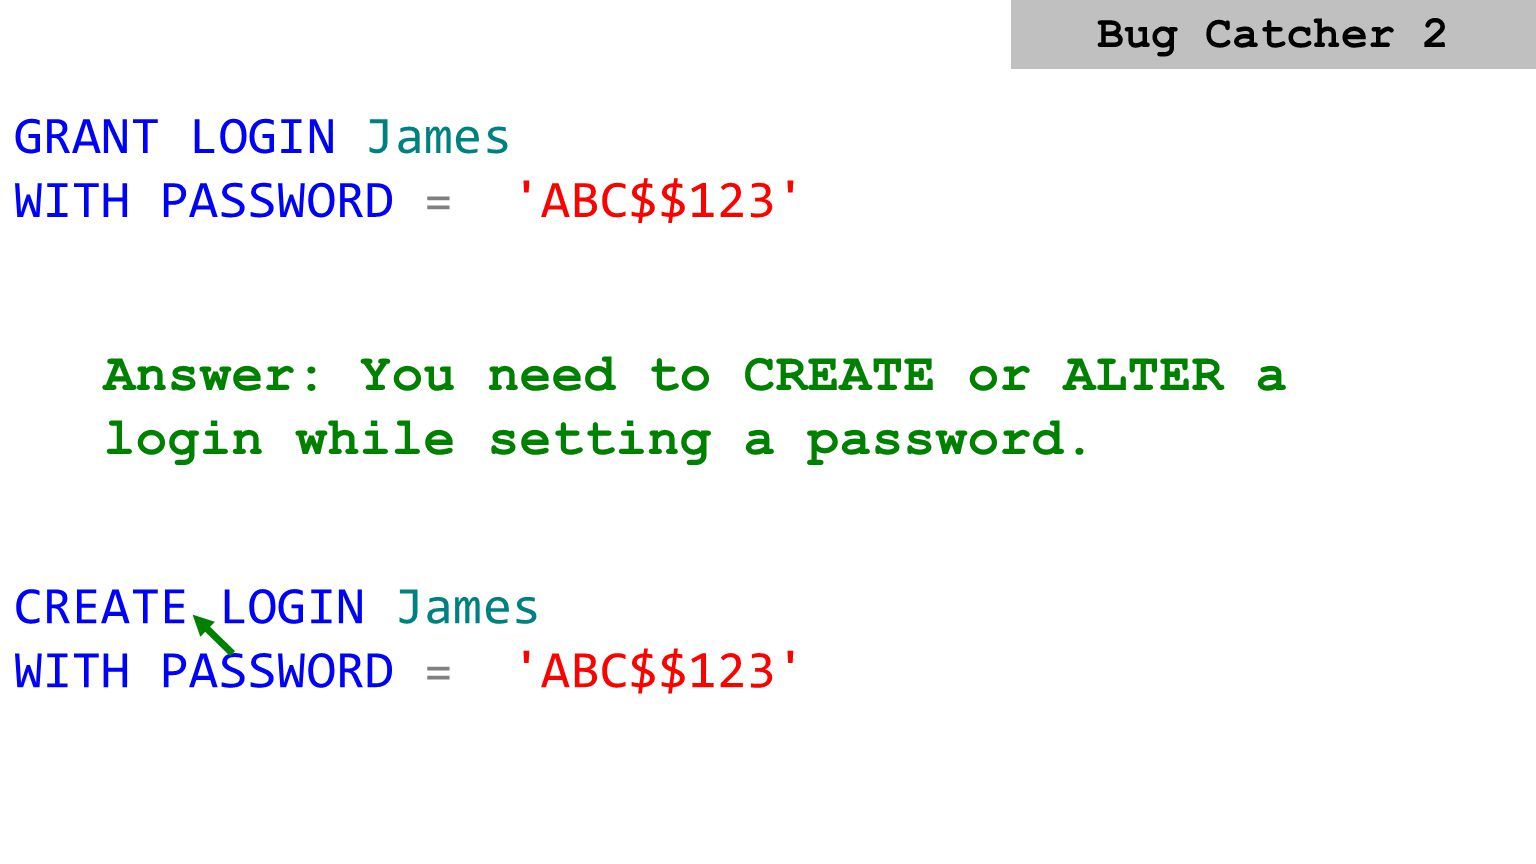 CREATE LOGIN James WITH PASSWORD = 'A' Answer: SQL 2005 and 2008 can enforce the password policy of the operating system. CREATE LOGIN James WITH PASS